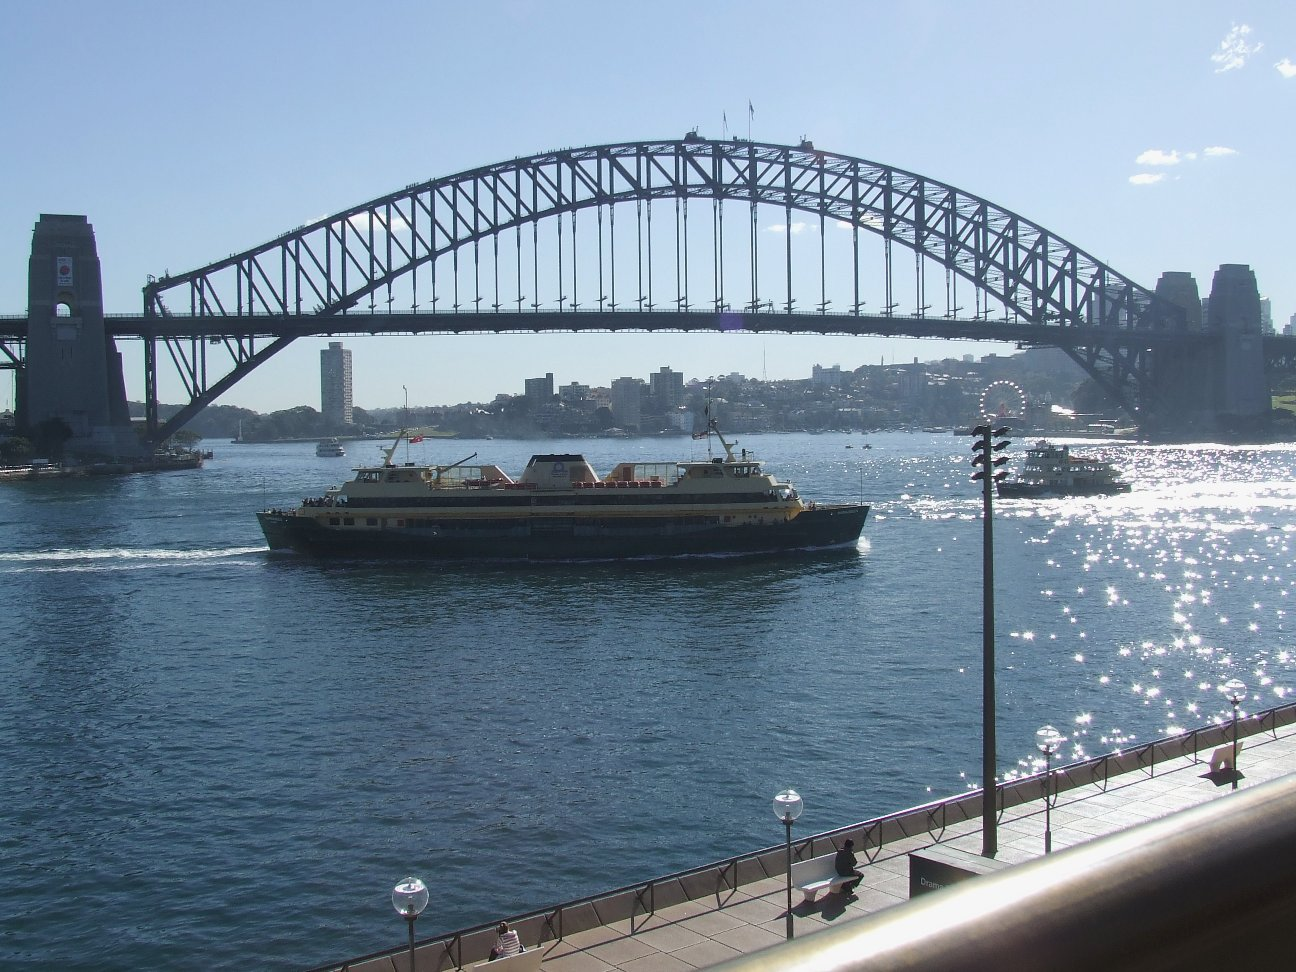 http://www.prasannaholidays.com/wp-content/uploads/2014/05/Sydney_Harbour_Bridge_from_the_Opera_House.jpg